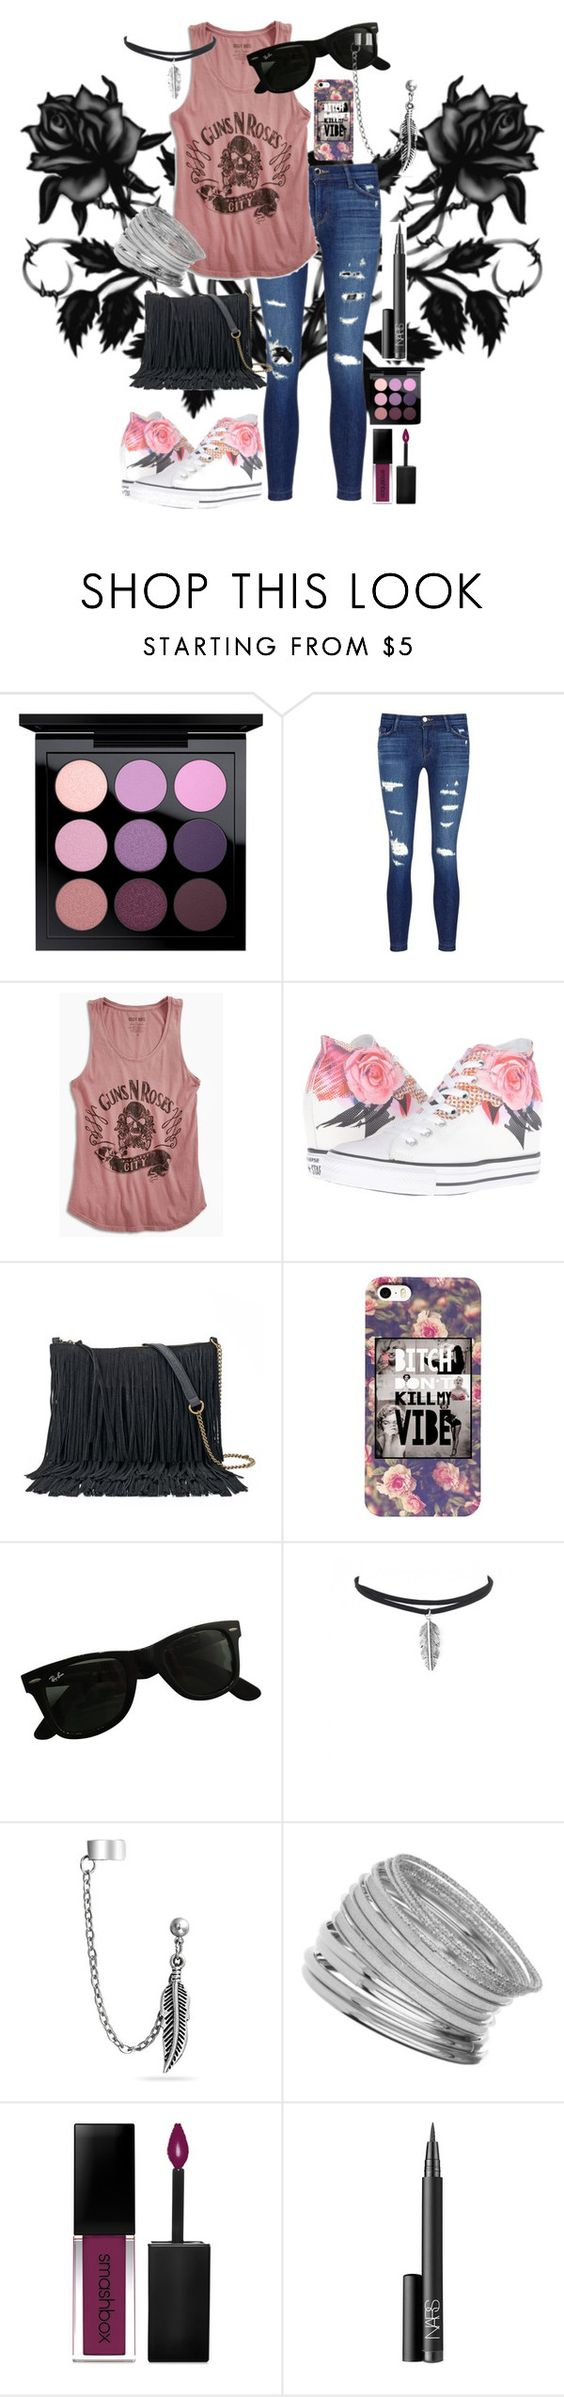 """Untitled #538"" by vampwriter ❤ liked on Polyvore featuring MAC Cosmetics, J Brand, Lucky Brand, Converse, SONOMA Goods for Life, Ray-Ban, Bling Jewelry, Miss Selfridge, Smashbox and NARS Cosmetics"